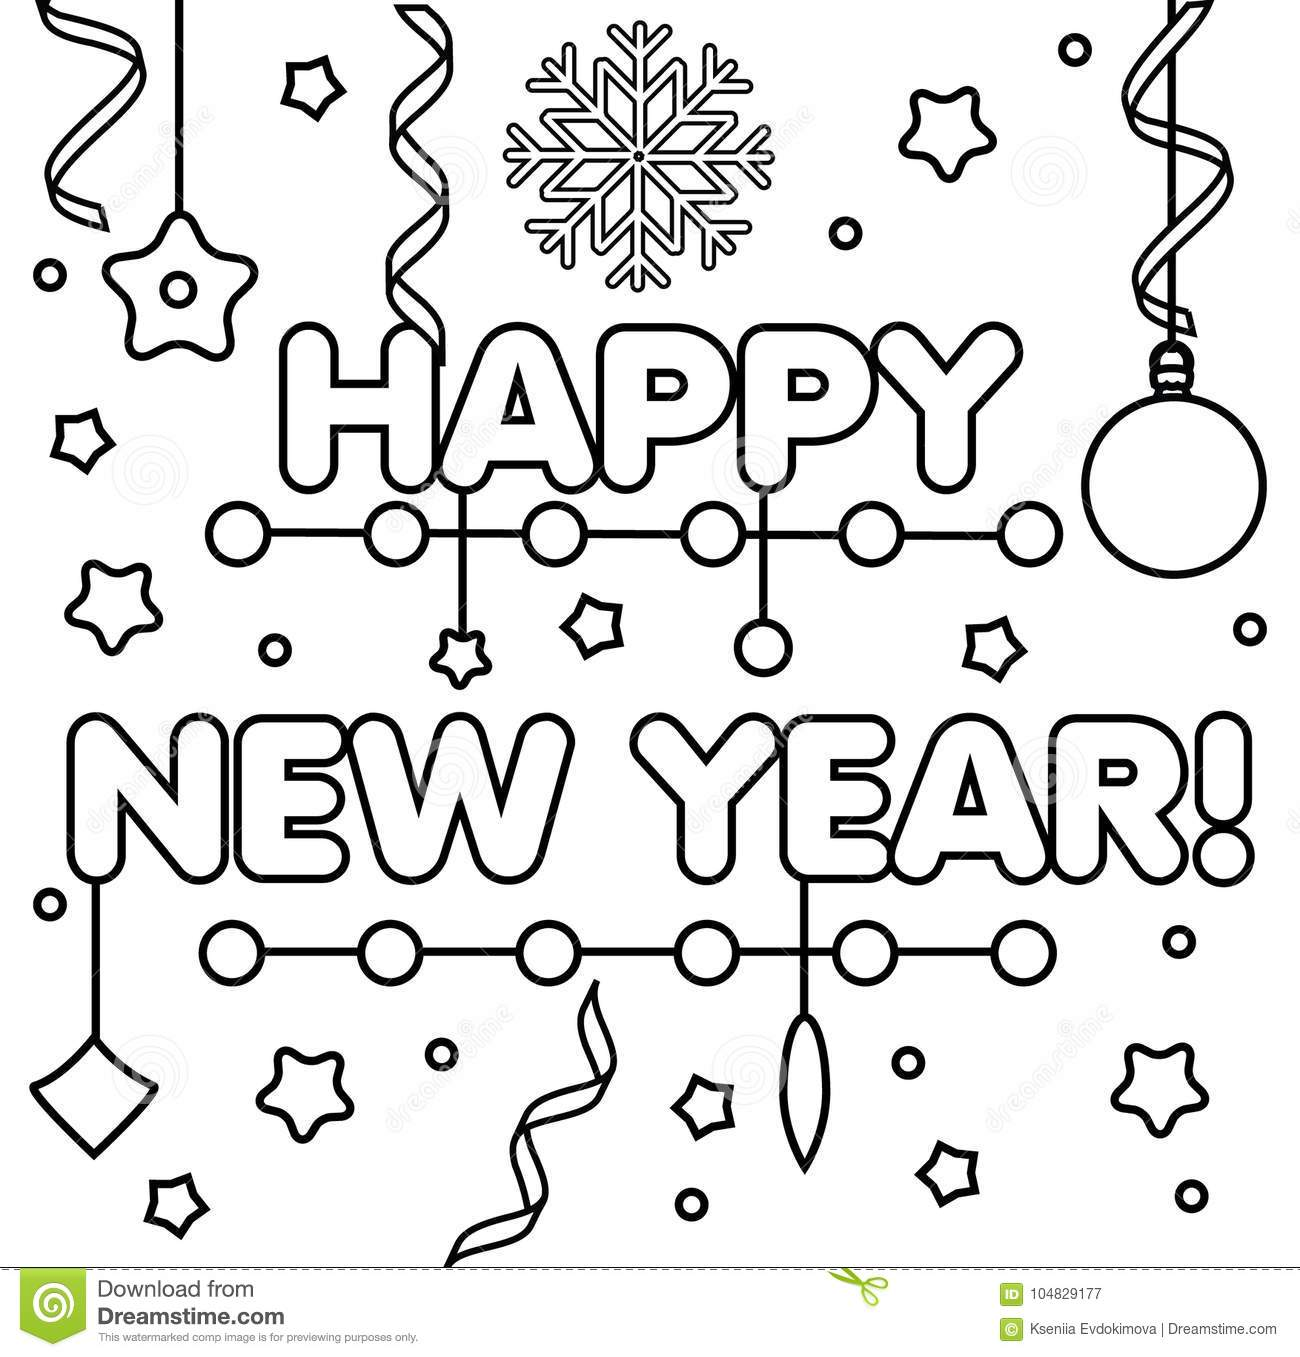 coloring page with happy new year text drawing kids game printable activity diy greeting card